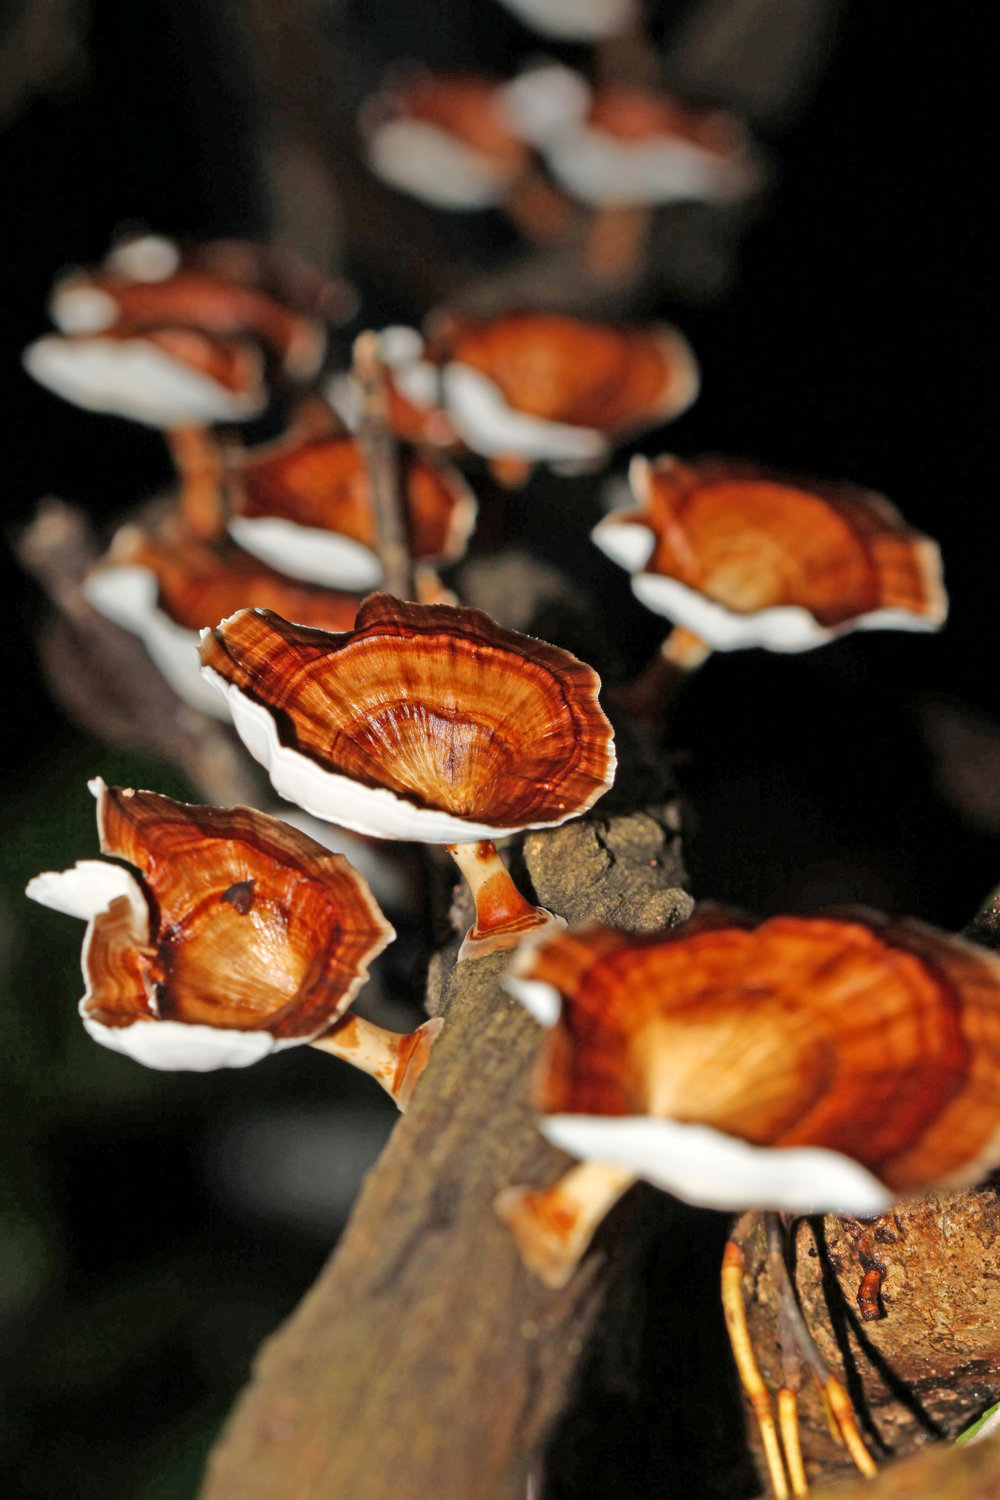 Reishi - One of the most important effects of the reishi mushroom is that it can boost your immune system.